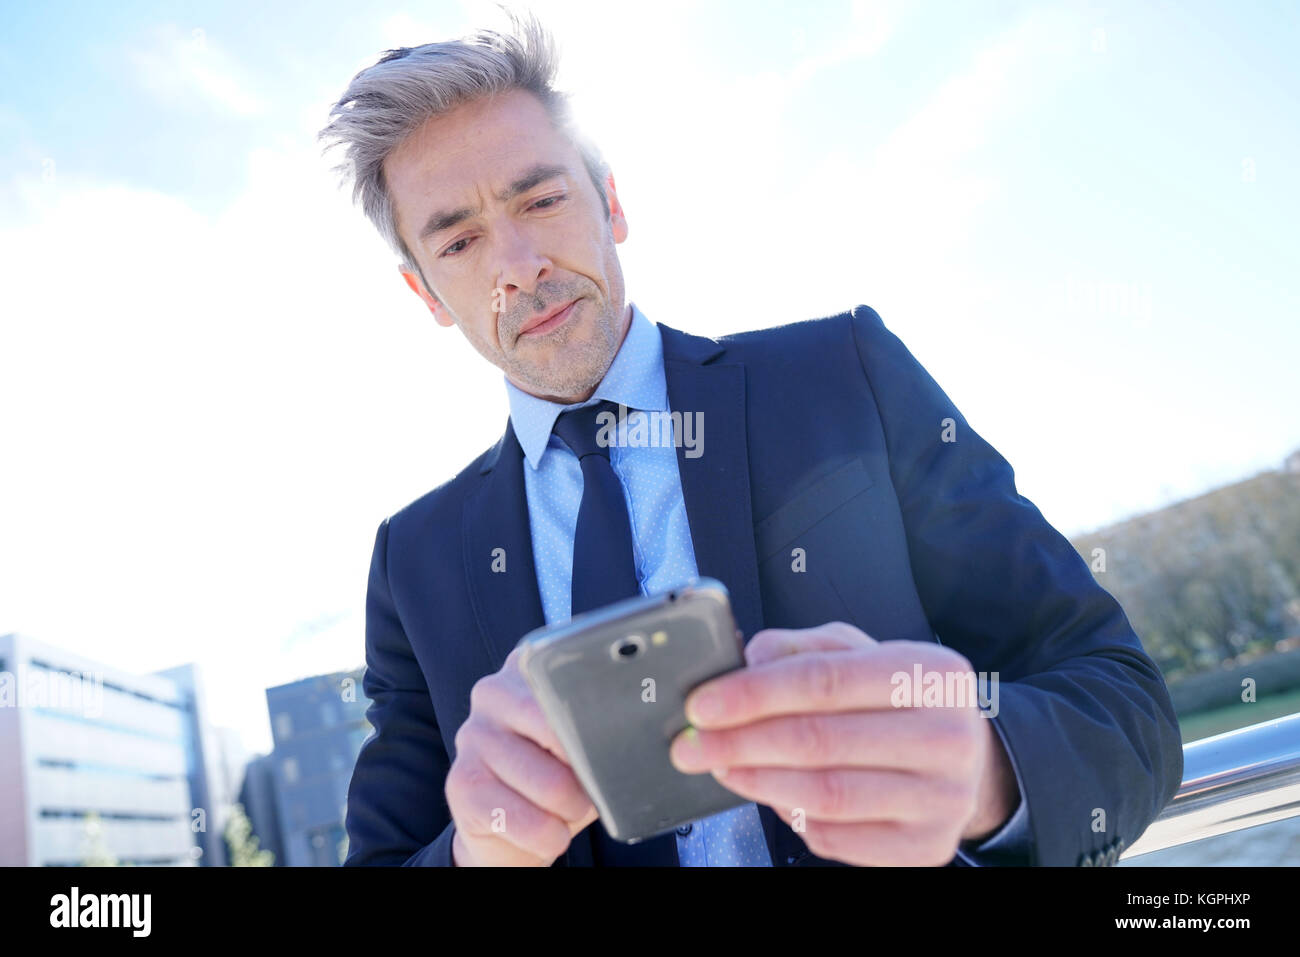 Businessman using pda outside the office - Stock Image